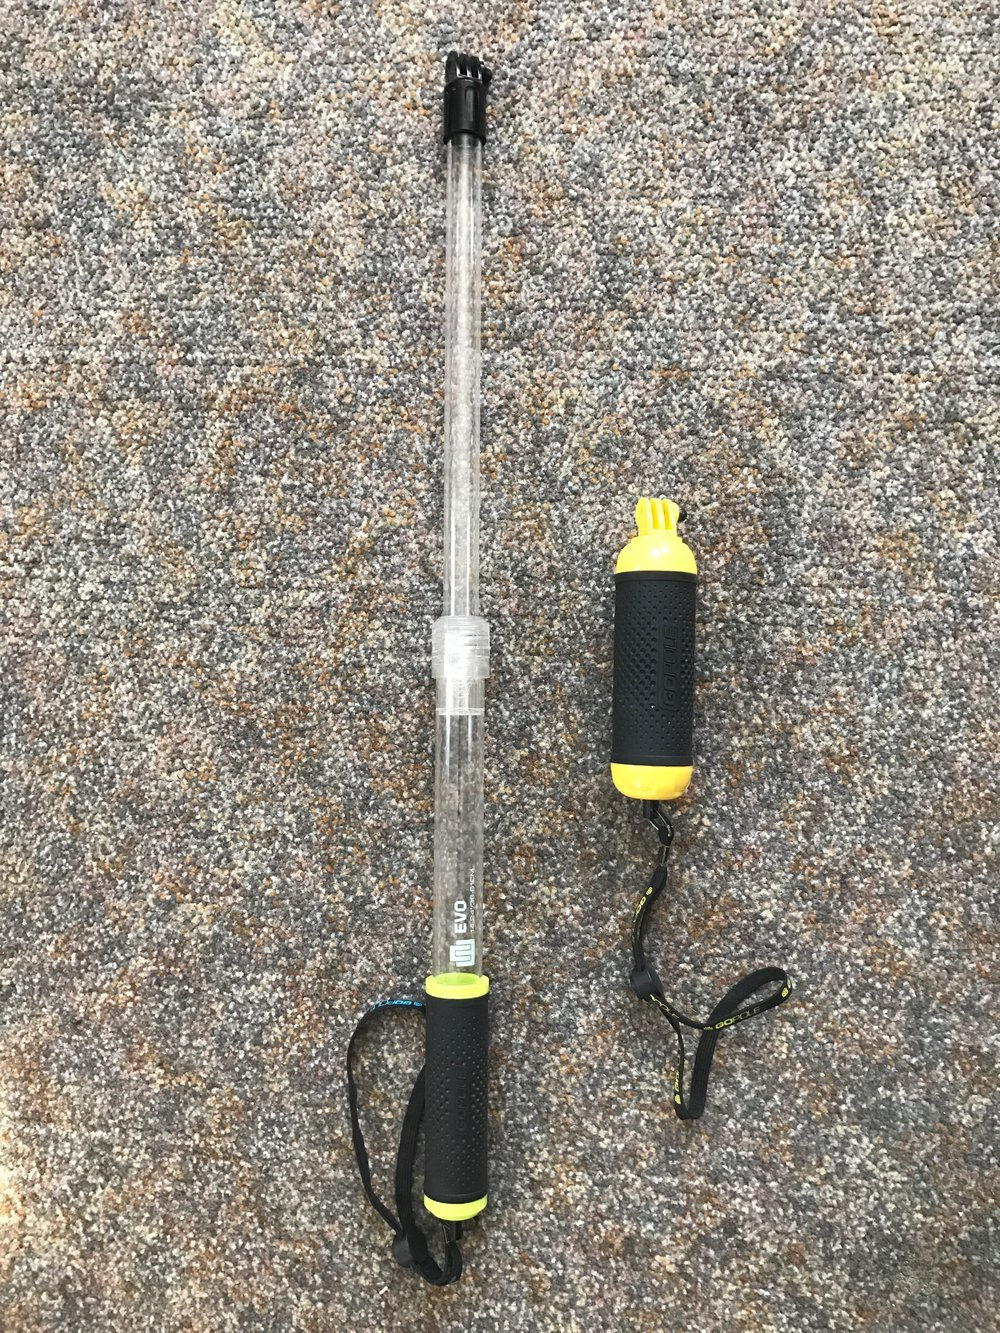 Shown: GoPole floating pole and hand grip.